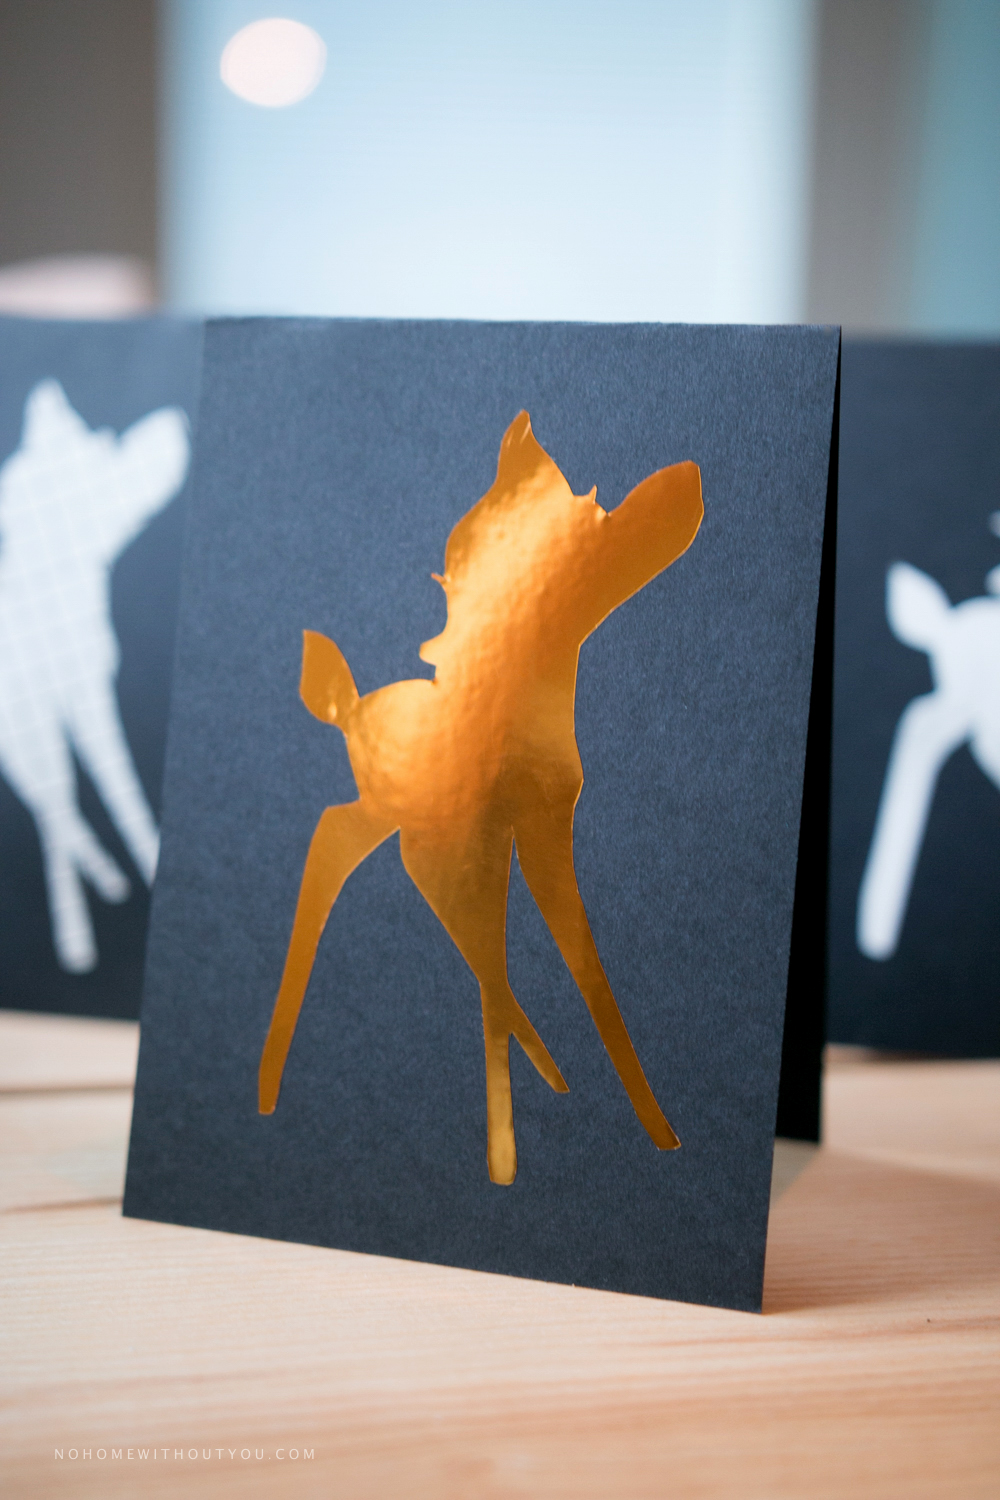 Free printable bambi pattern cards No home without you blog (1 of 8)